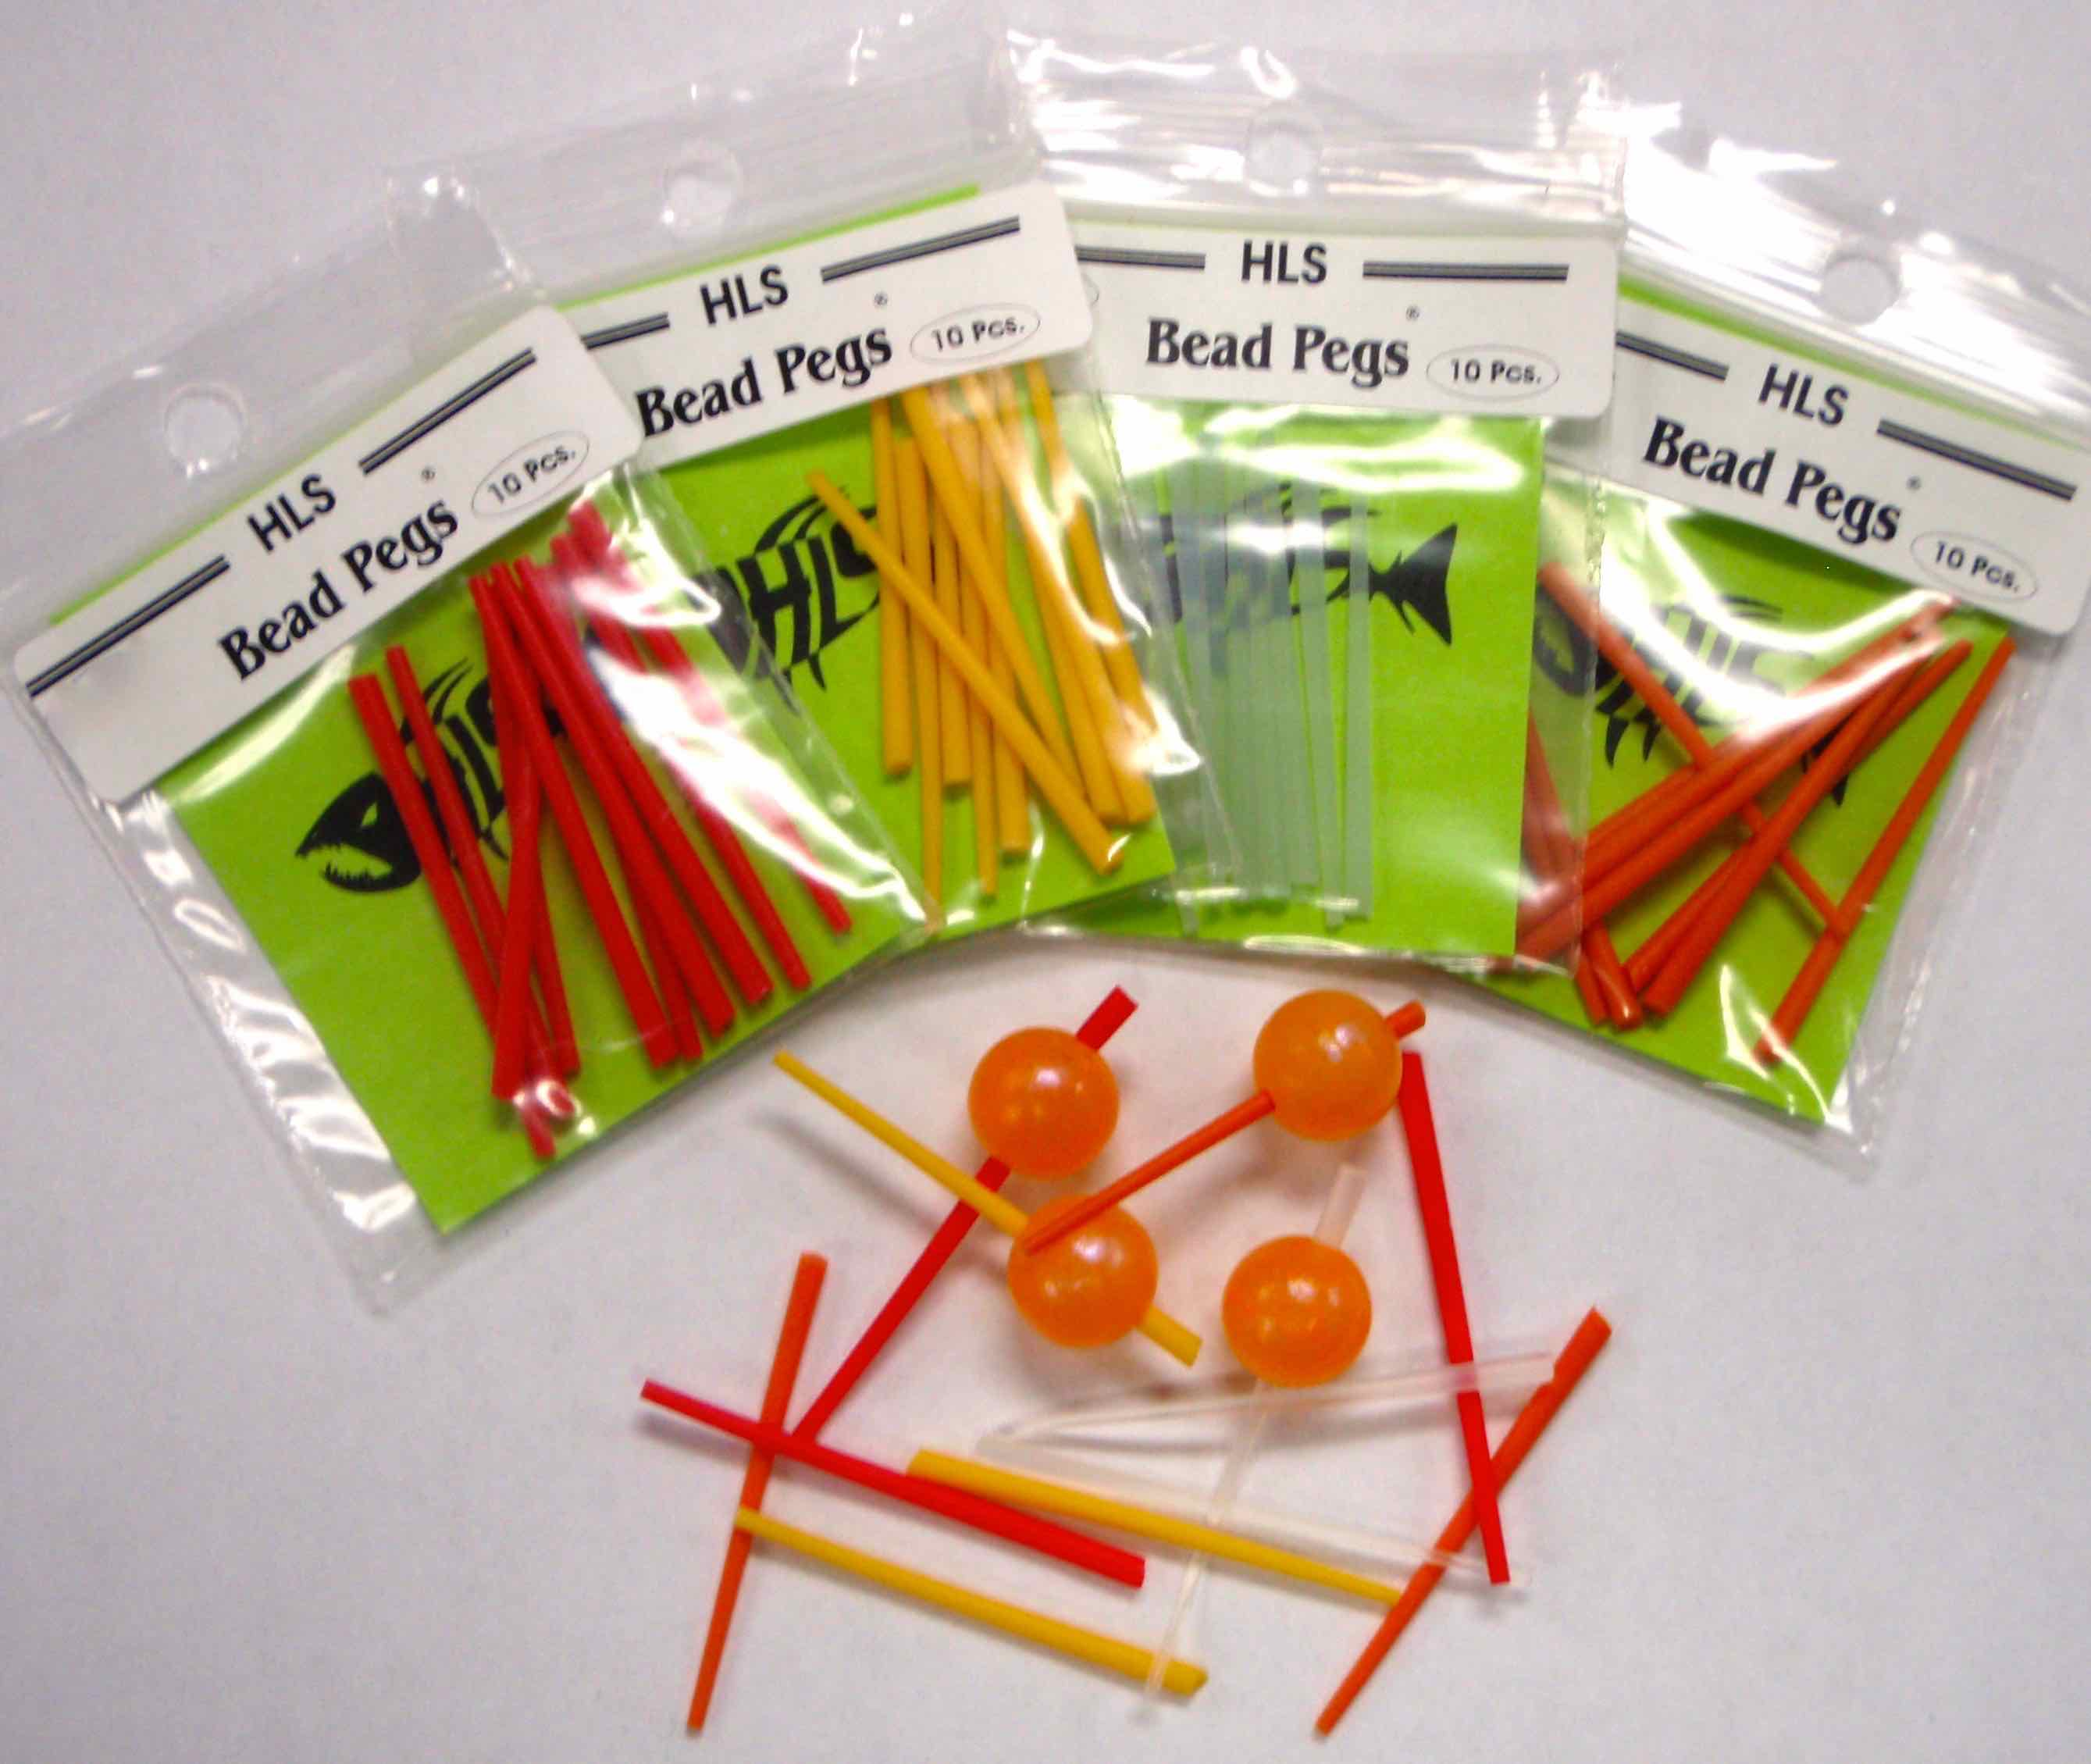 HLS-Bead-Pegs-Assorted-CC